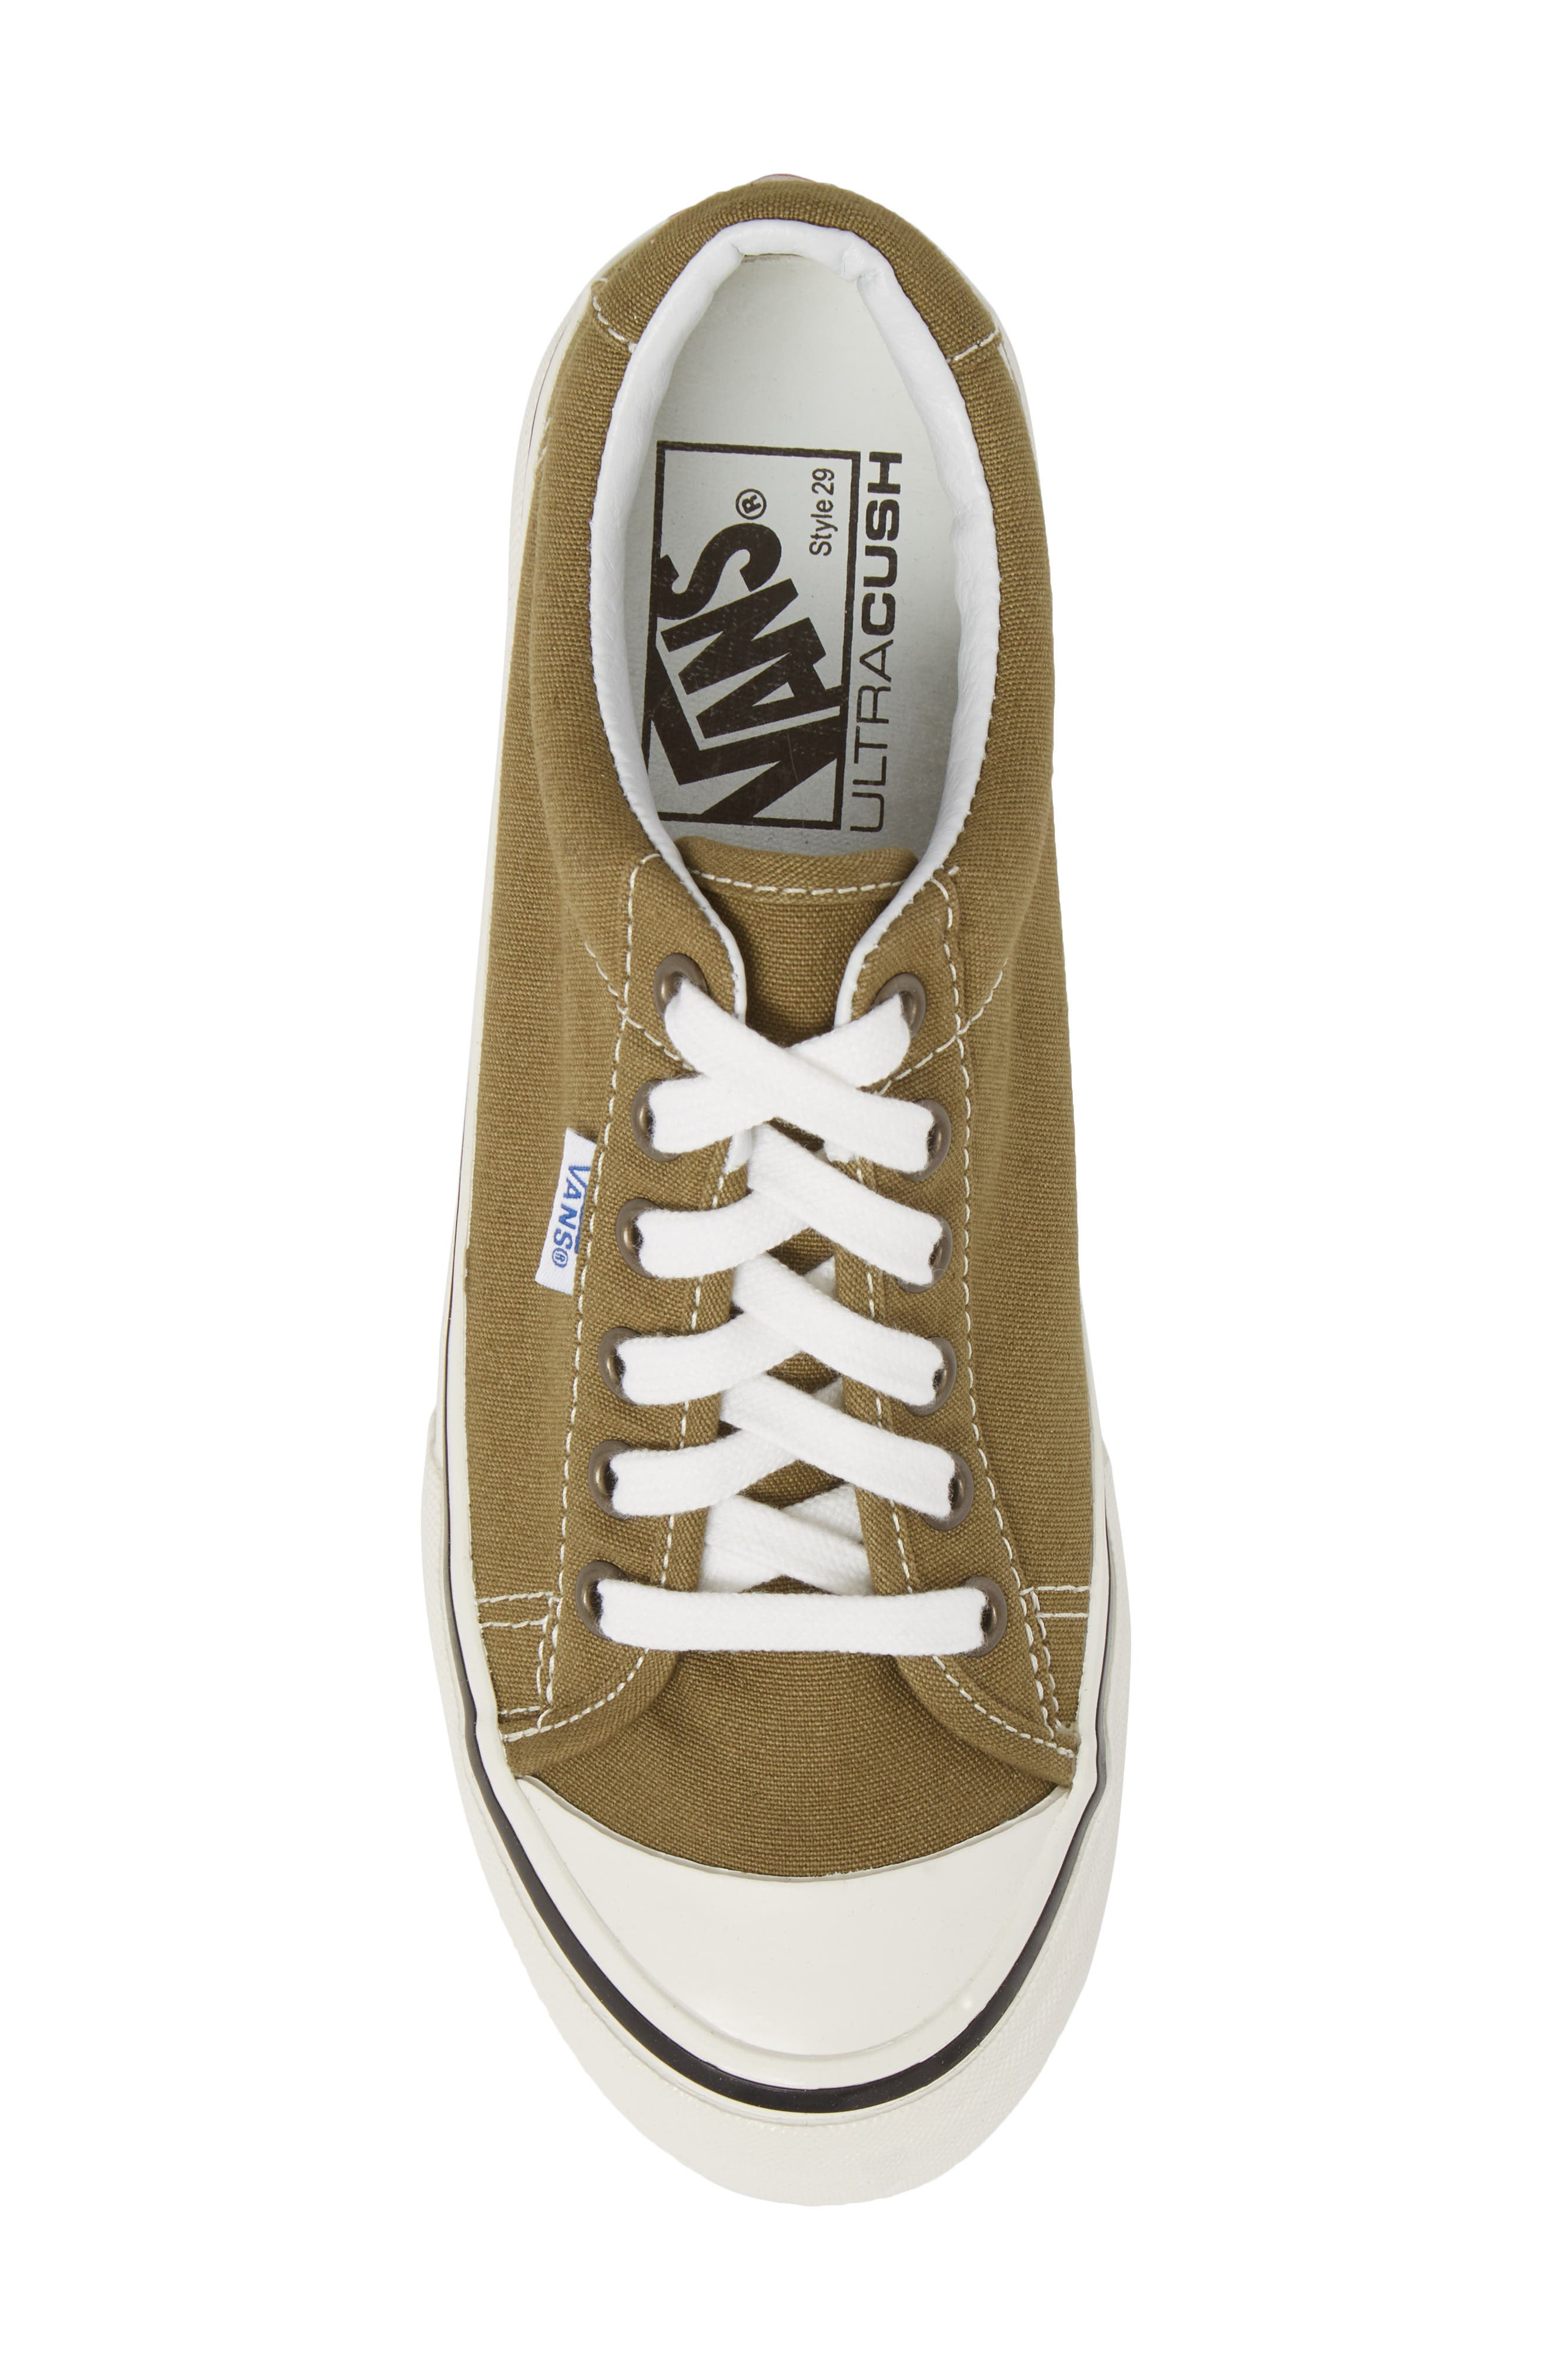 Anaheim Factory Style 29 DX Sneaker,                             Alternate thumbnail 5, color,                             Anaheim Factory Olive